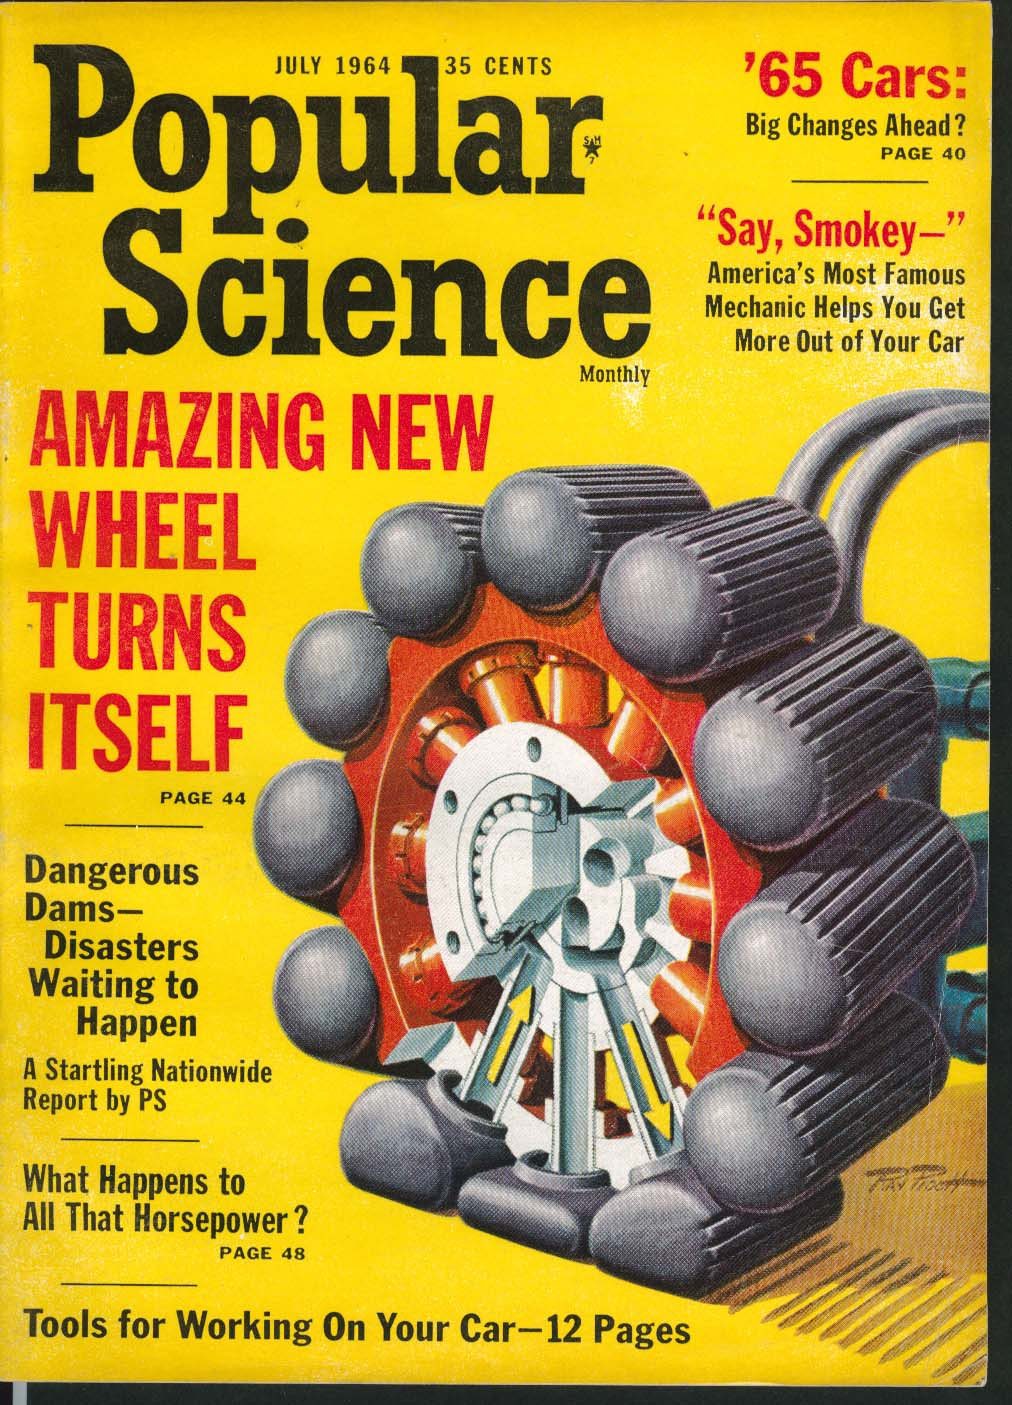 Image for POPULAR SCIENCE Preview of 1965 Cars Dangerous Dams Horsepower ++ 7 1964